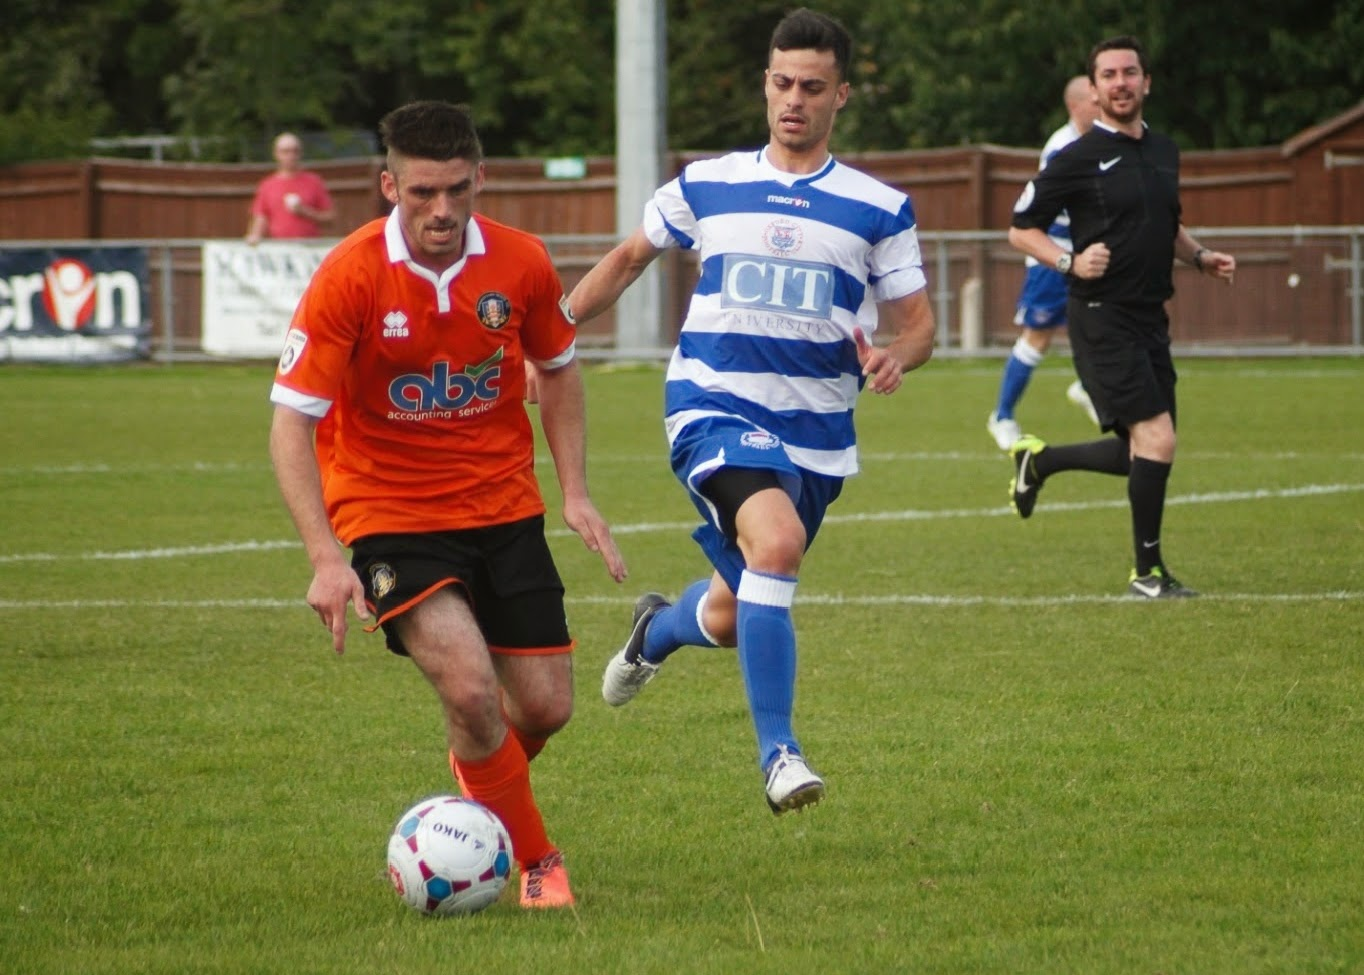 Openly gay footballer Liam Davis pictured playing football